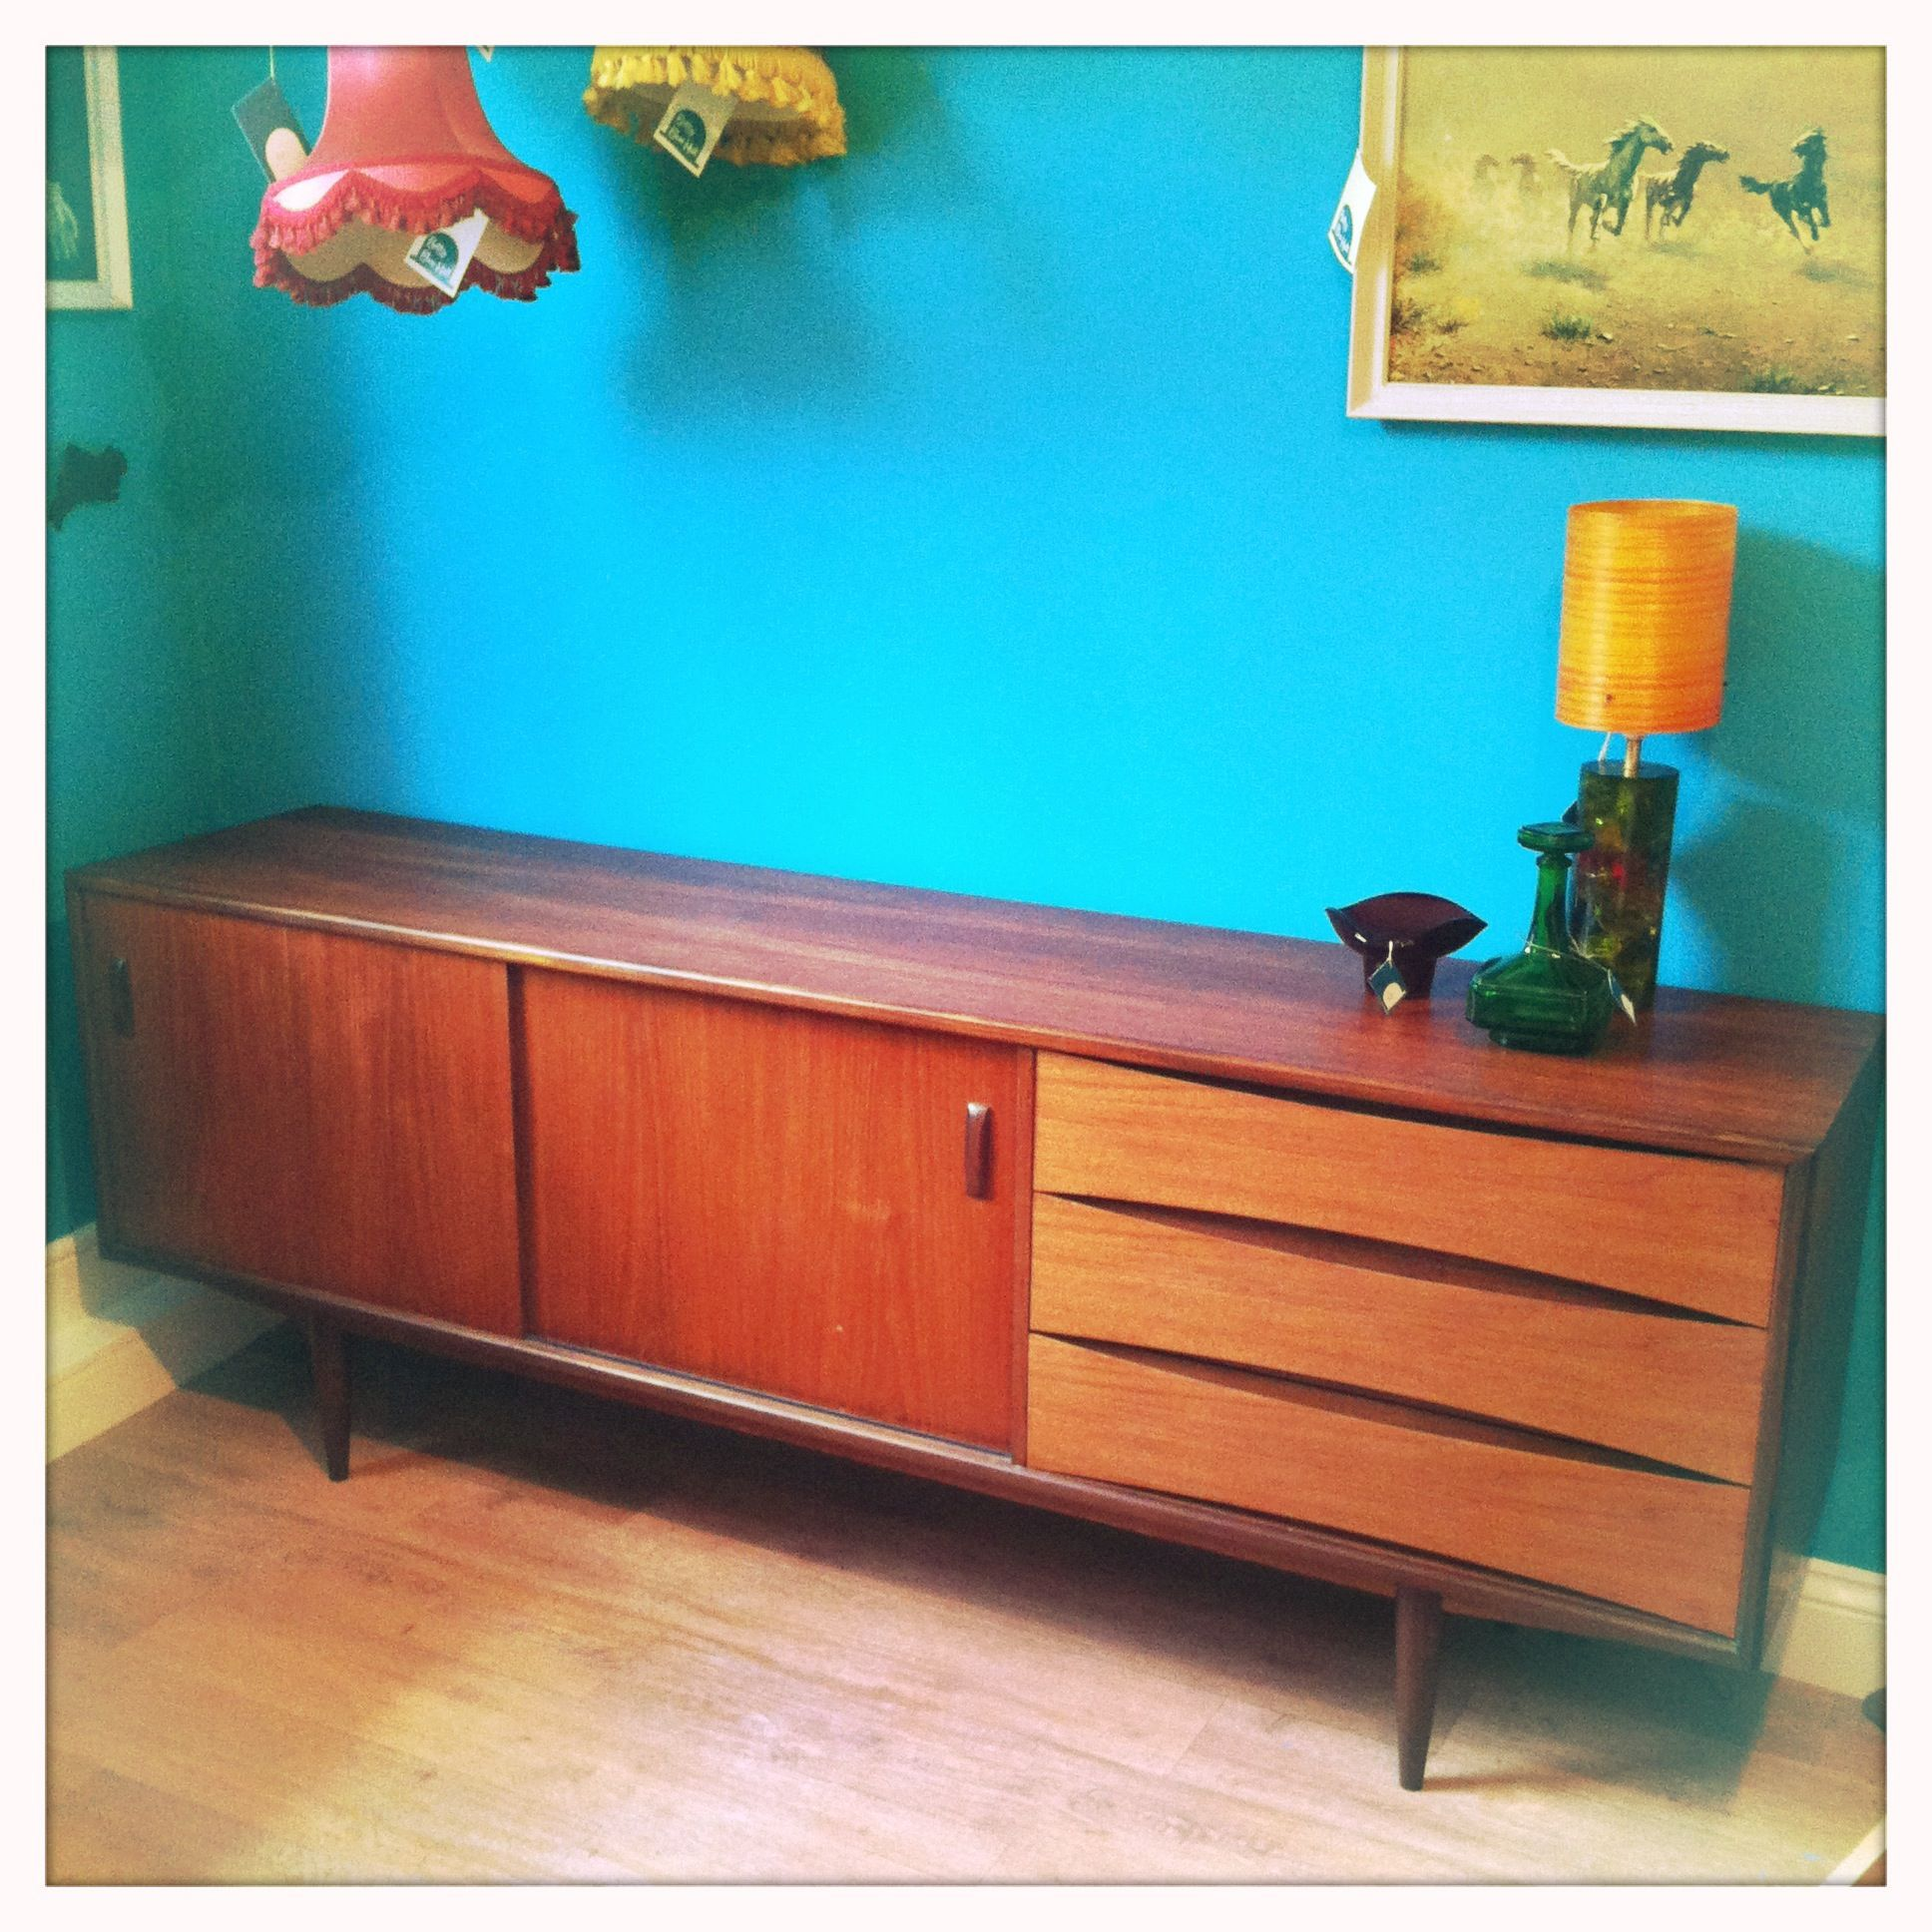 vintage 60s furniture. 60s Furniture - Google Search Vintage